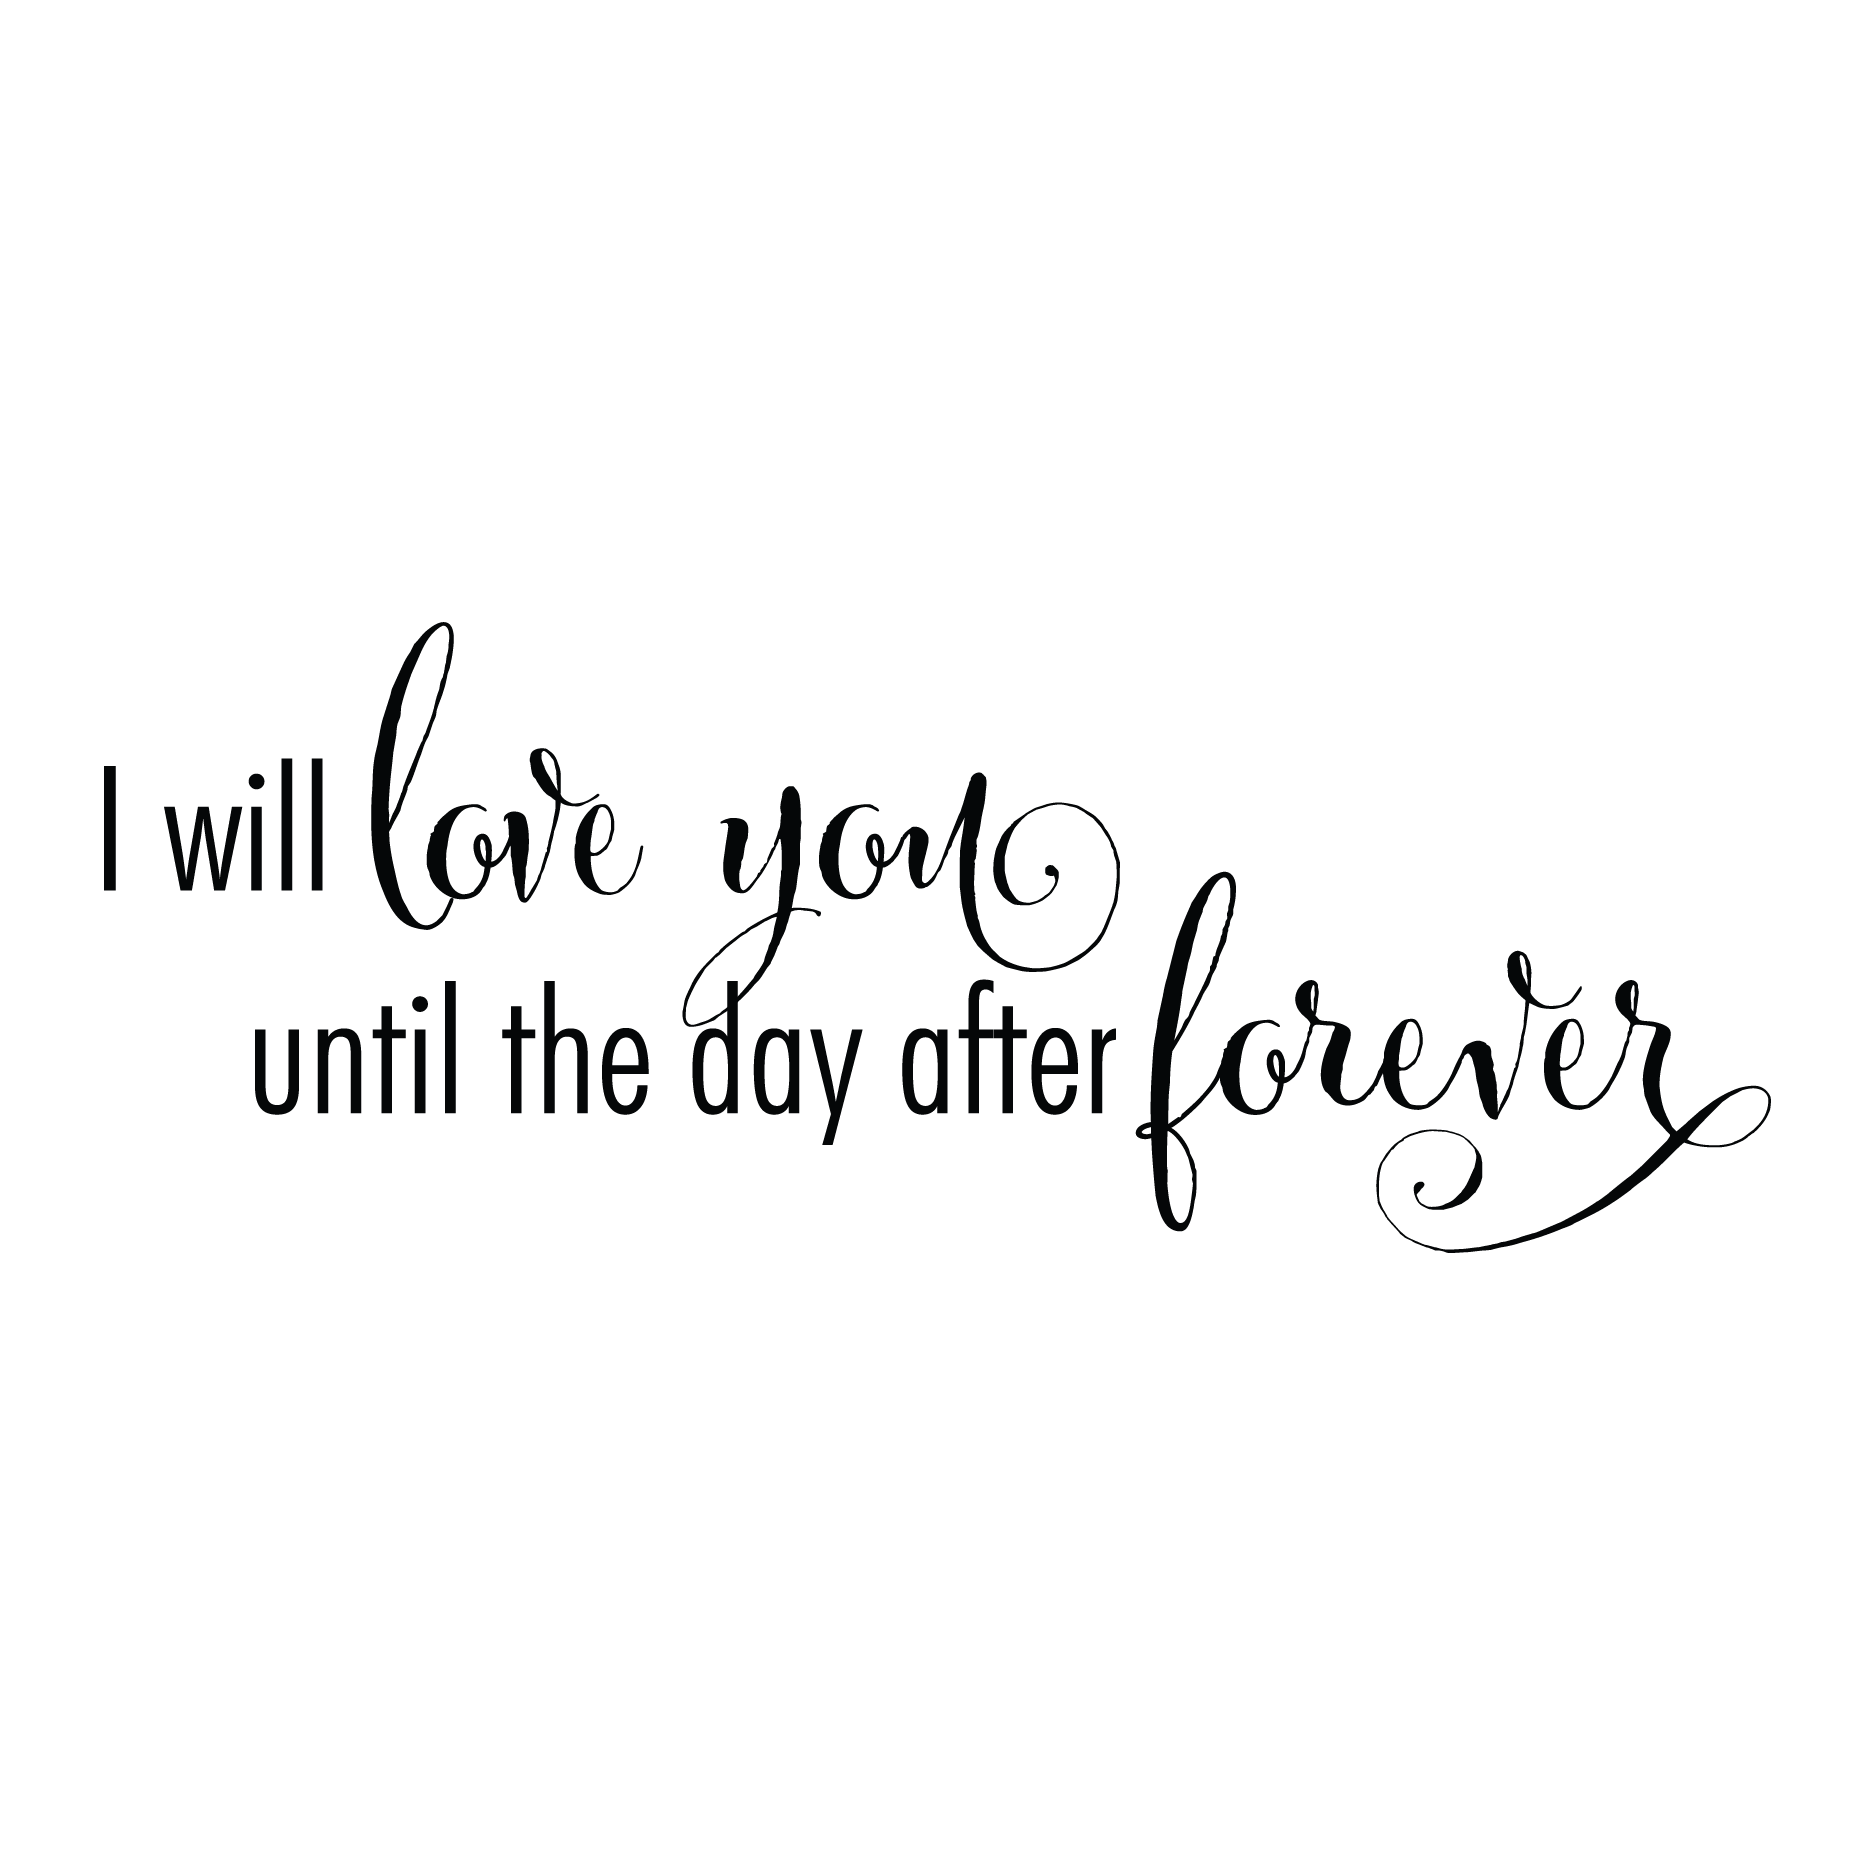 The Day After Forever Wall Quotes Decal